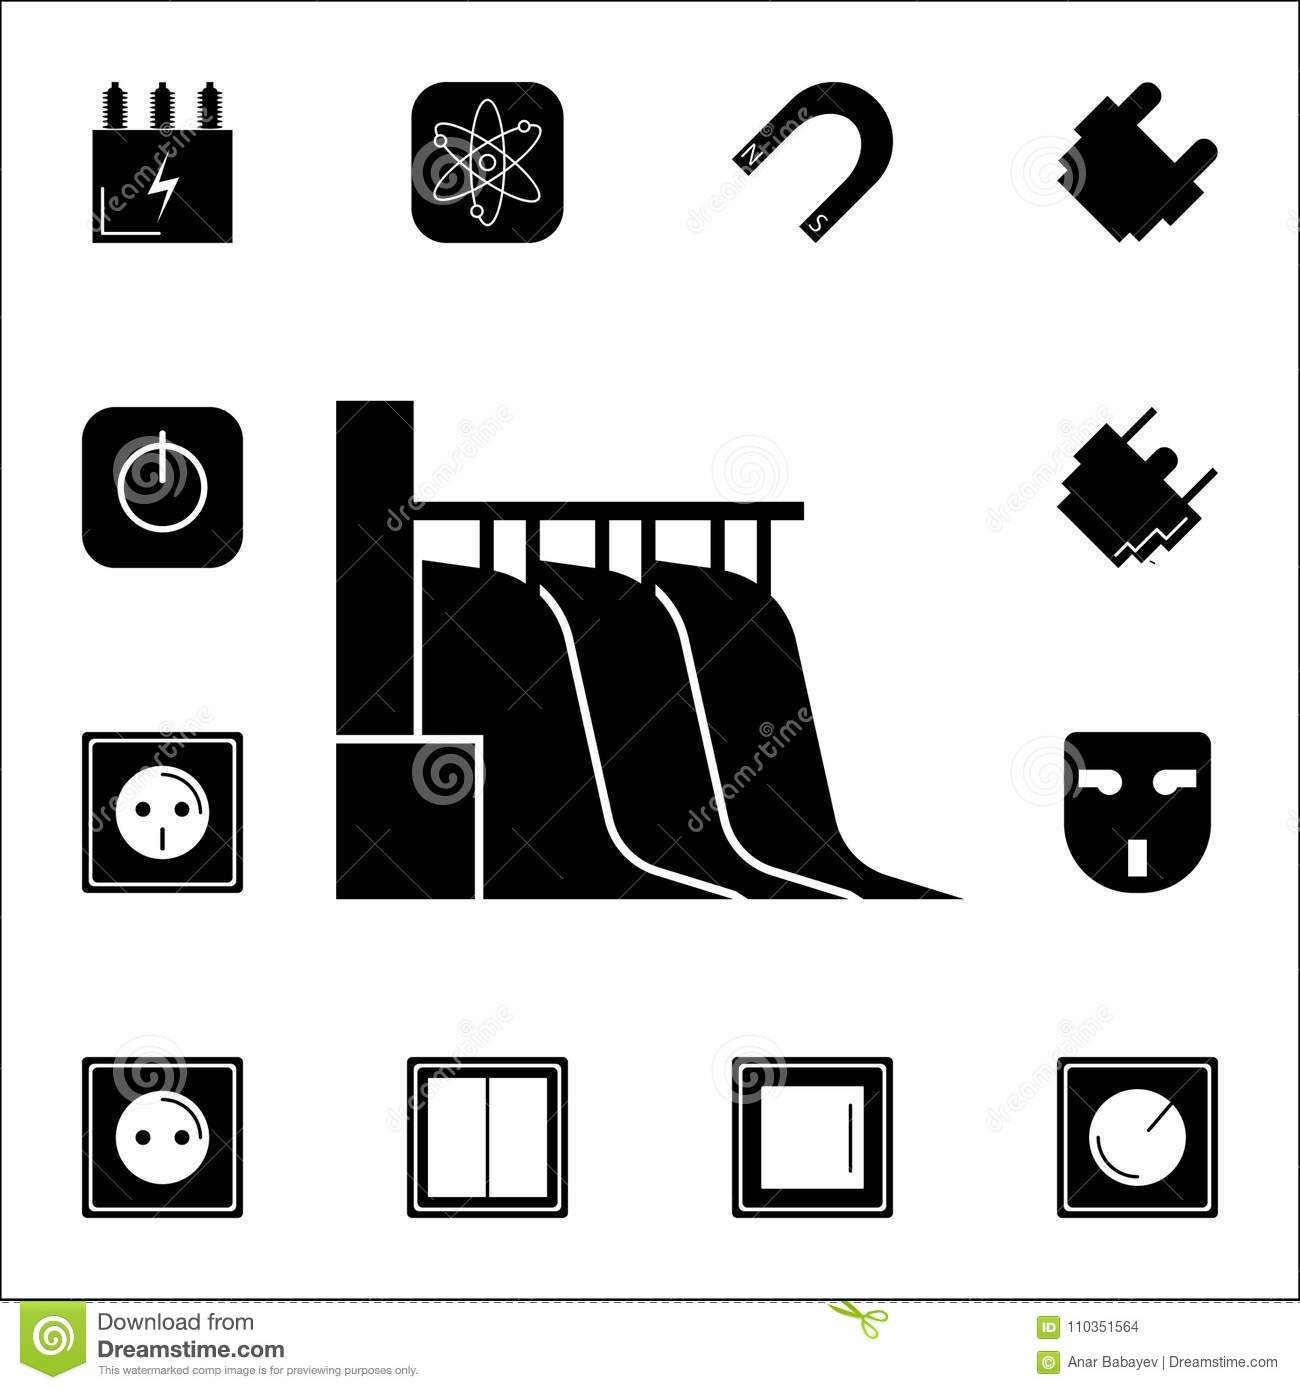 Hydro power station icon set of energy icons premium quality hydro power station icon set of energy icons premium quality graphic design icons signs and symbols collection icons for websit biocorpaavc Gallery